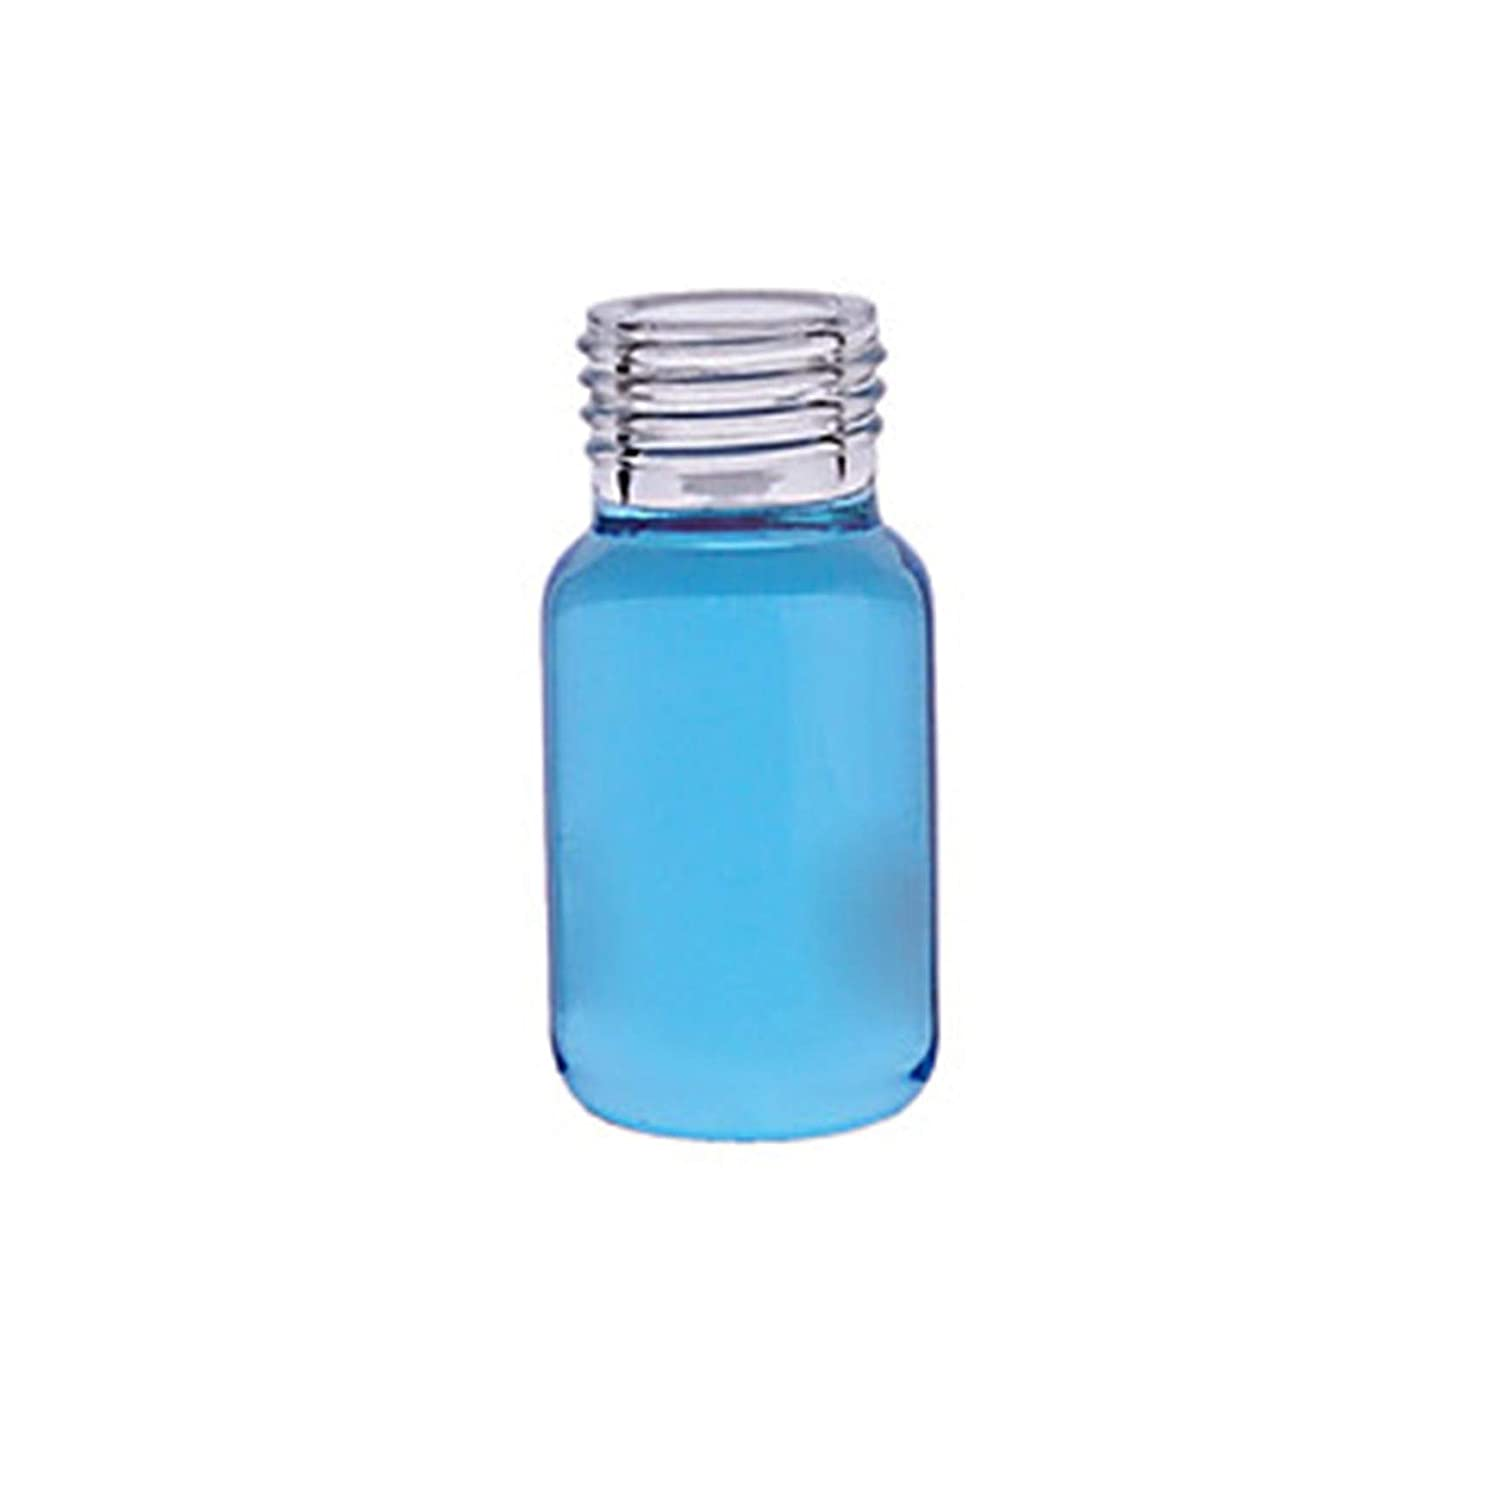 Microliter 16-6000-S Silanized Screw Headspace Vial Thread Ambe Easy-to-use low-pricing